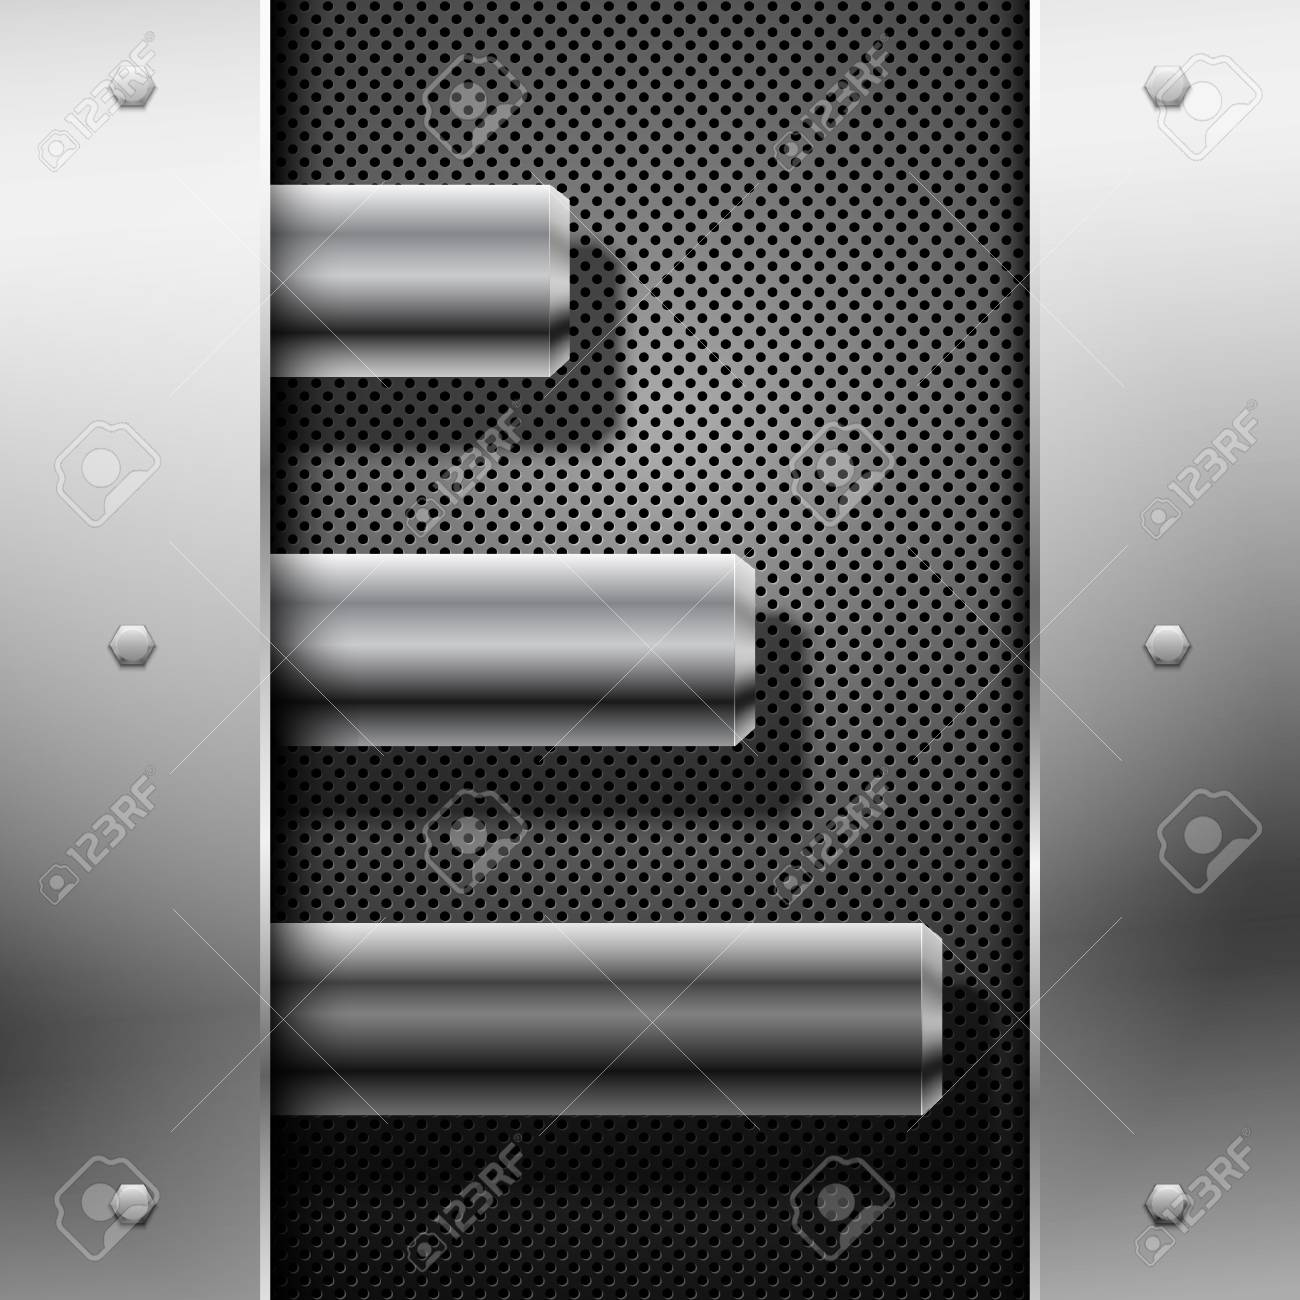 Abstract metal background. Vector illustration. Stock Vector - 9528812